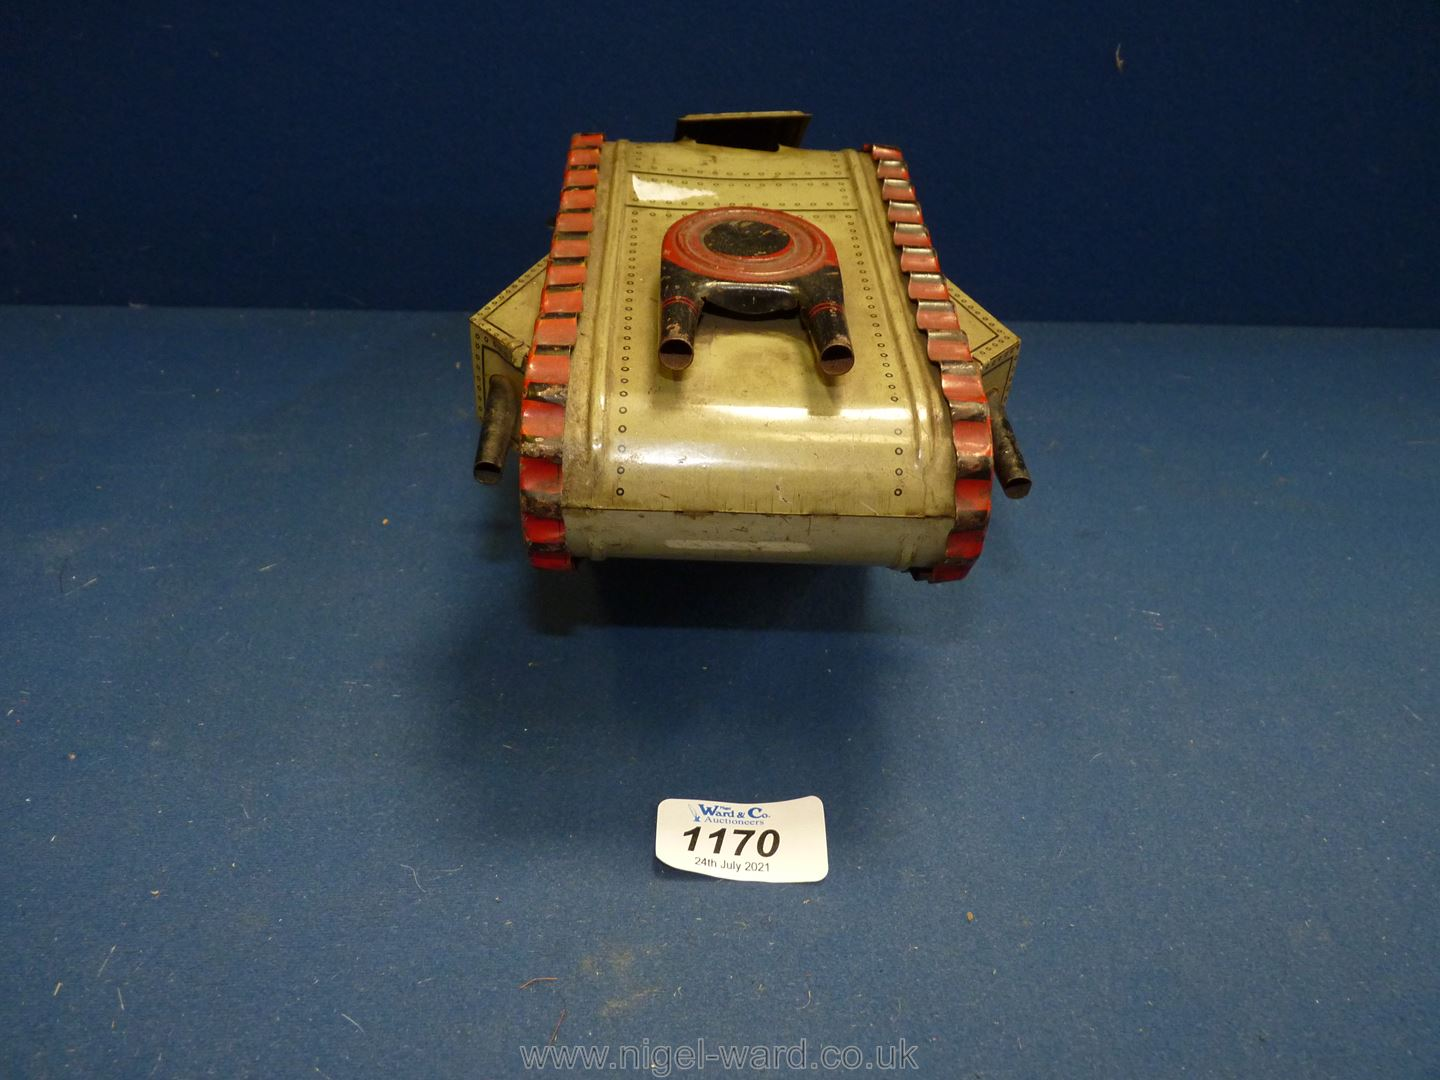 A German made tin plate clockwork toy of a Mark IV-type tank with spring loaded soldier, circa 1925, - Image 2 of 4